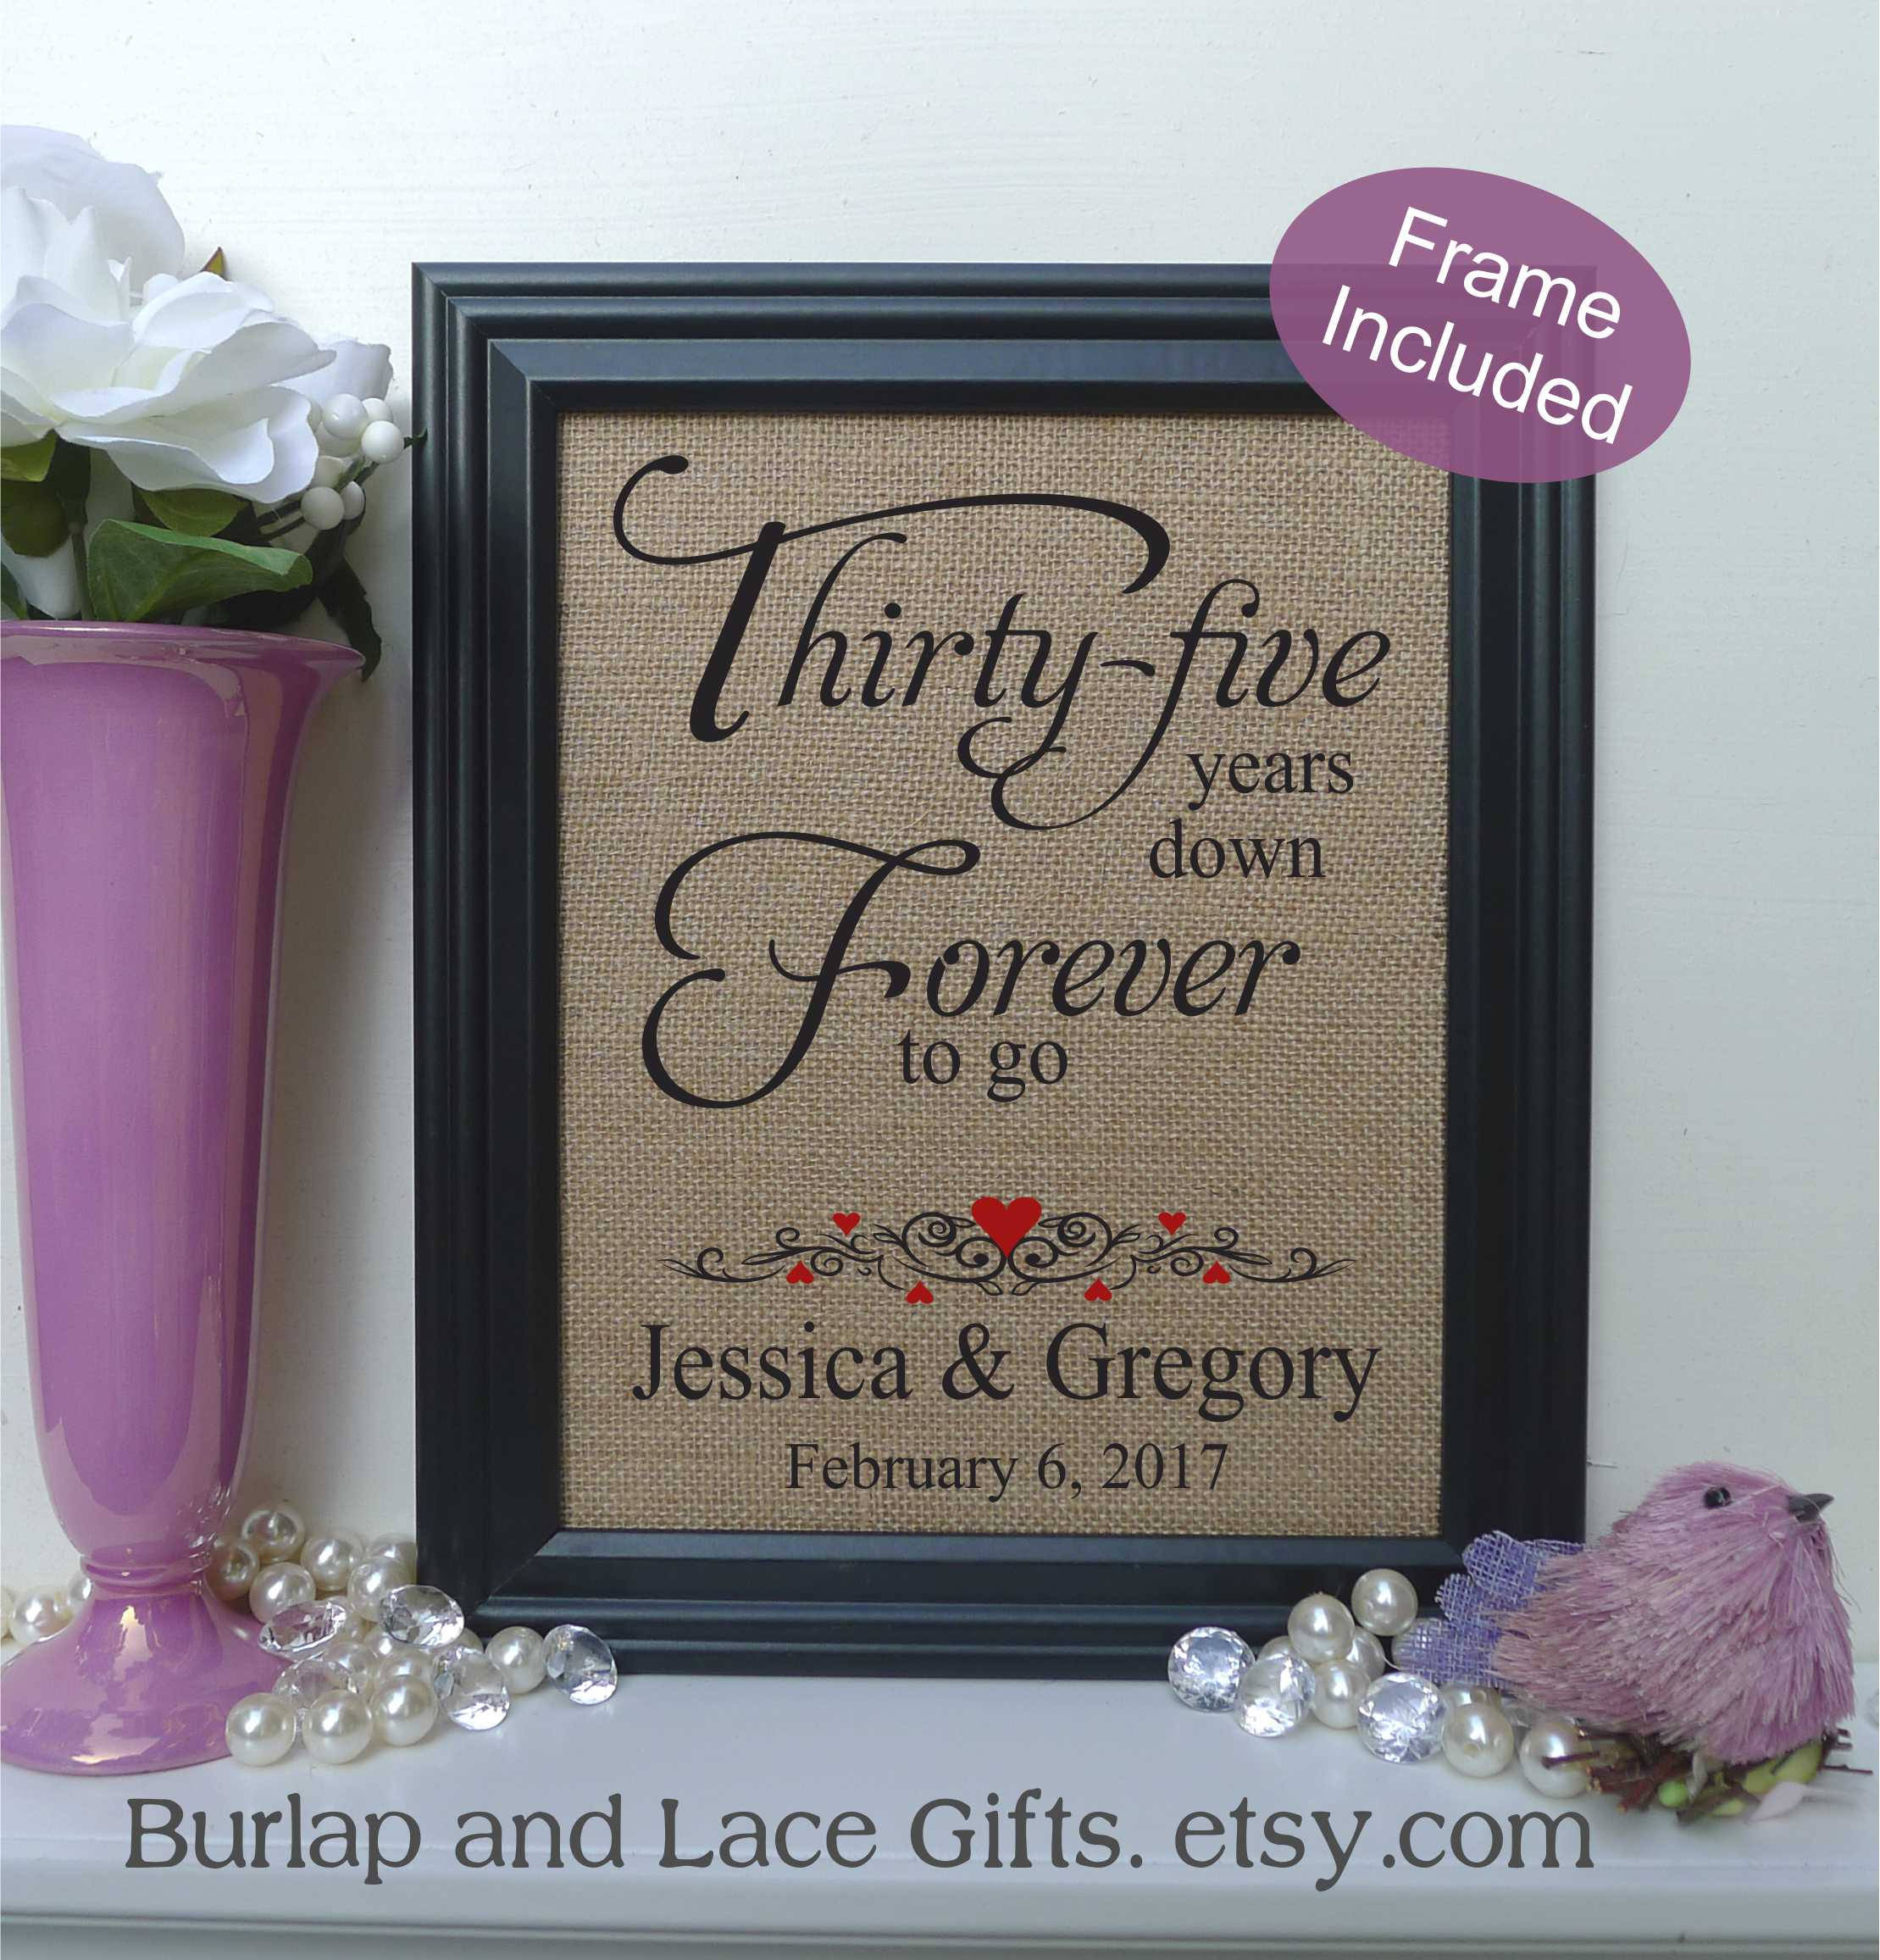 Best ideas about 35Th Anniversary Gift Ideas . Save or Pin FRAMED Personalized 35th Anniversary Gift 35 years of Now.